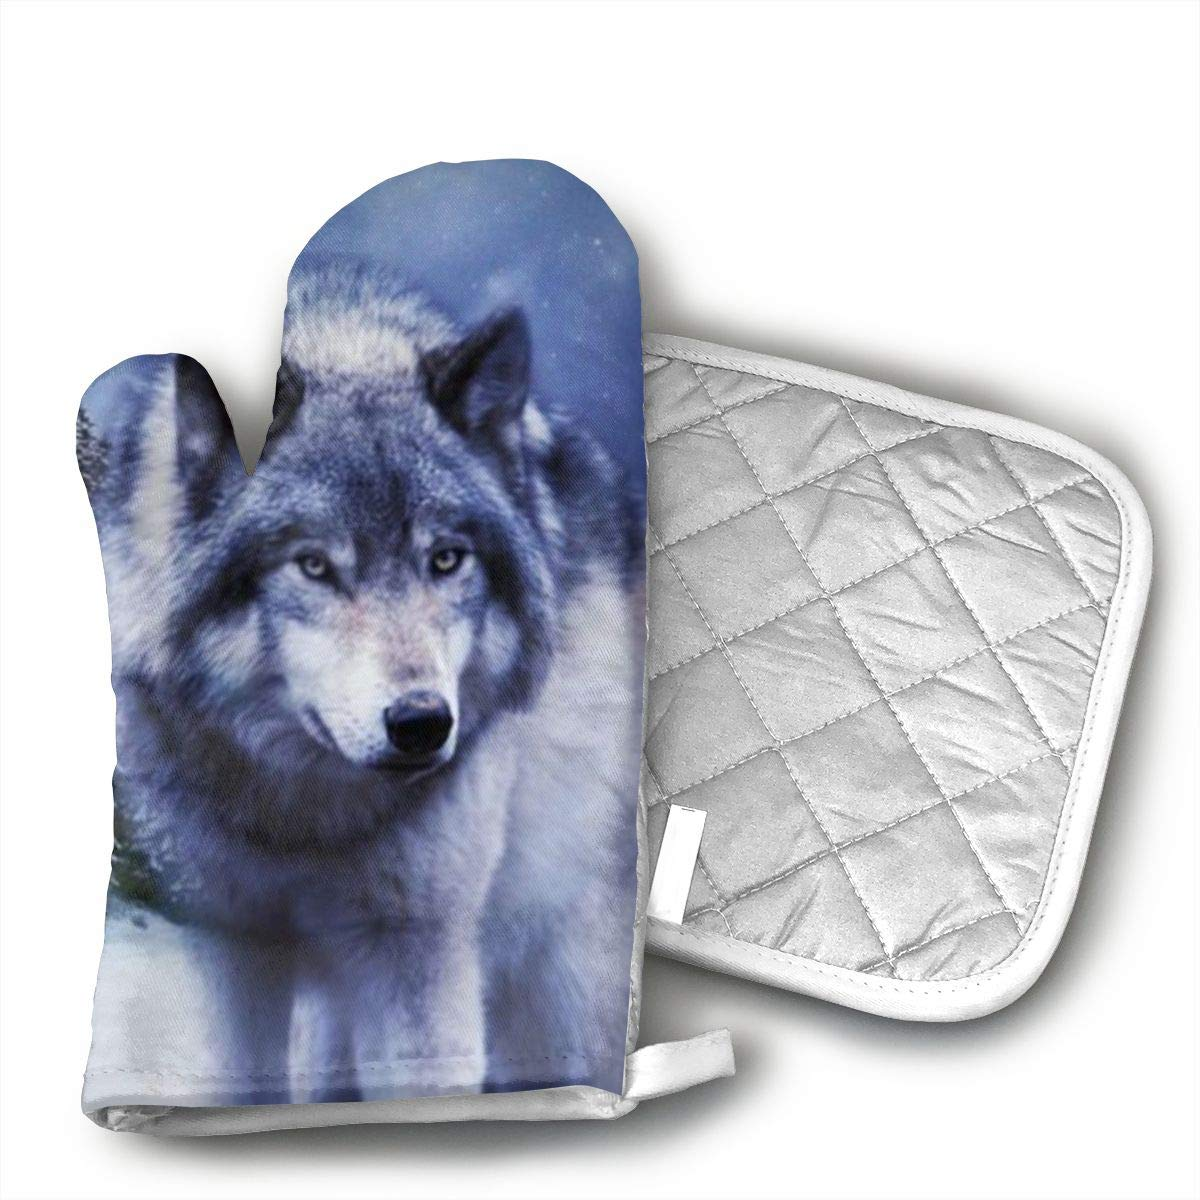 Jiqnajn6 Wolf Oven Mitts,Heat Resistant Oven Gloves, Safe Cooking Baking, Grilling, Barbecue, Machine Washable,Pot Holders.